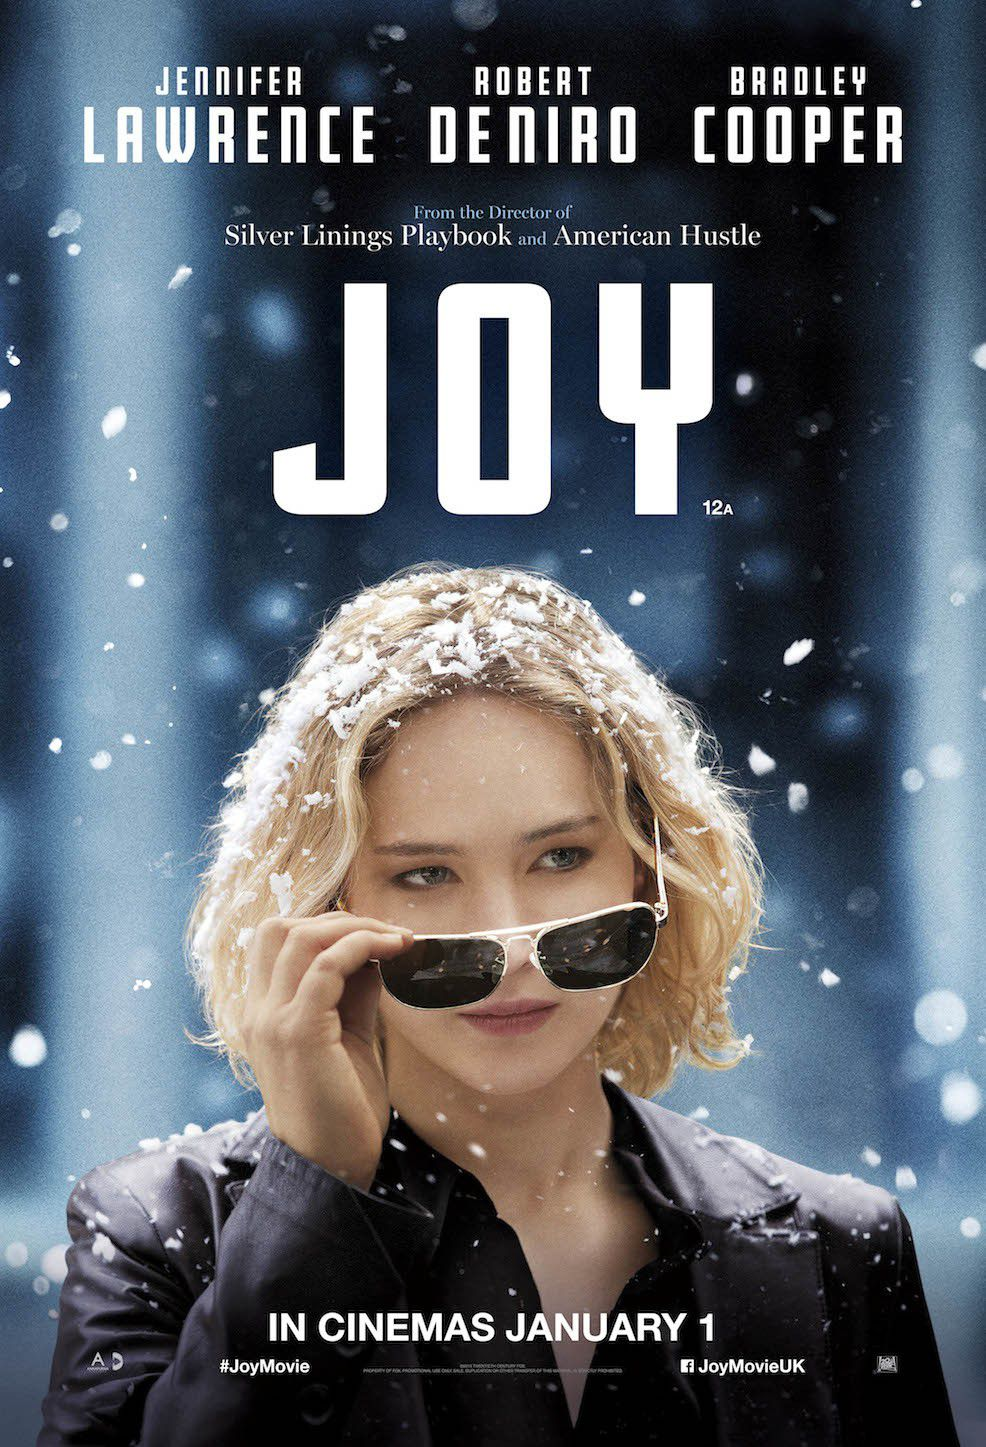 Film - Joy - Jennifer Lawrence - Robert DeNiro - Bradley Cooper  - poster